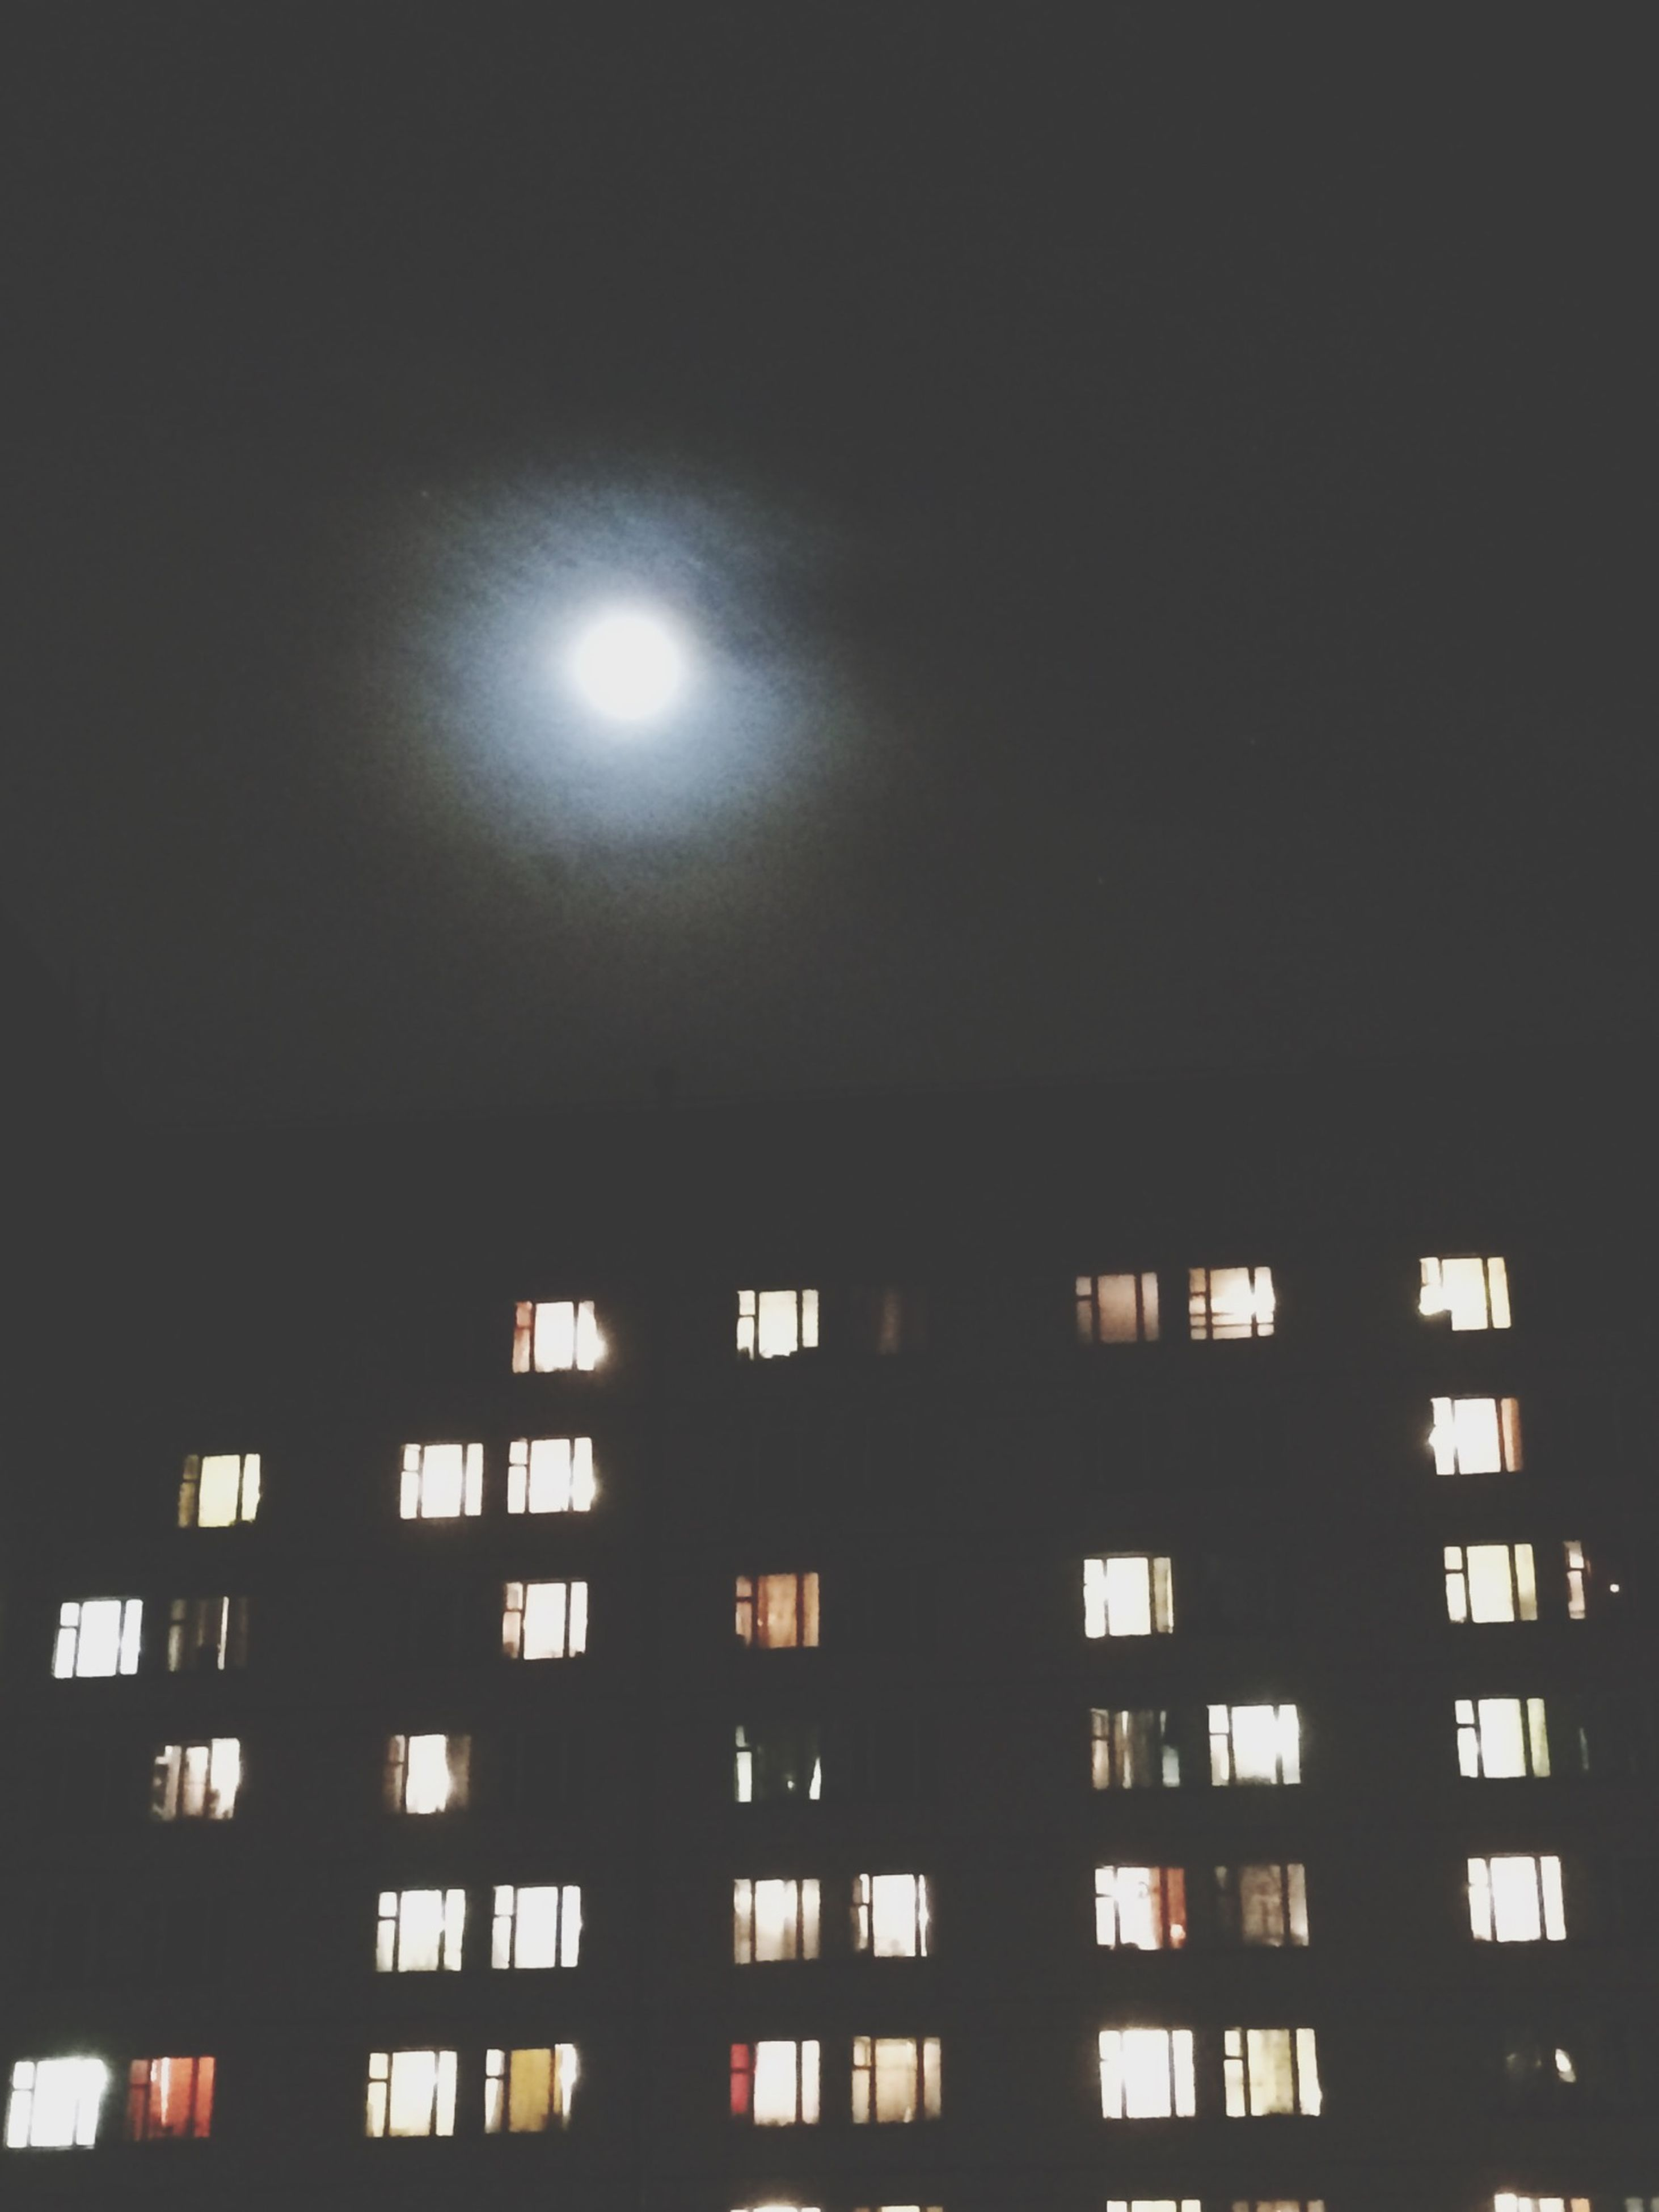 architecture, built structure, low angle view, building exterior, illuminated, window, night, building, lighting equipment, glass - material, residential building, city, sky, residential structure, no people, ceiling, dark, modern, outdoors, house